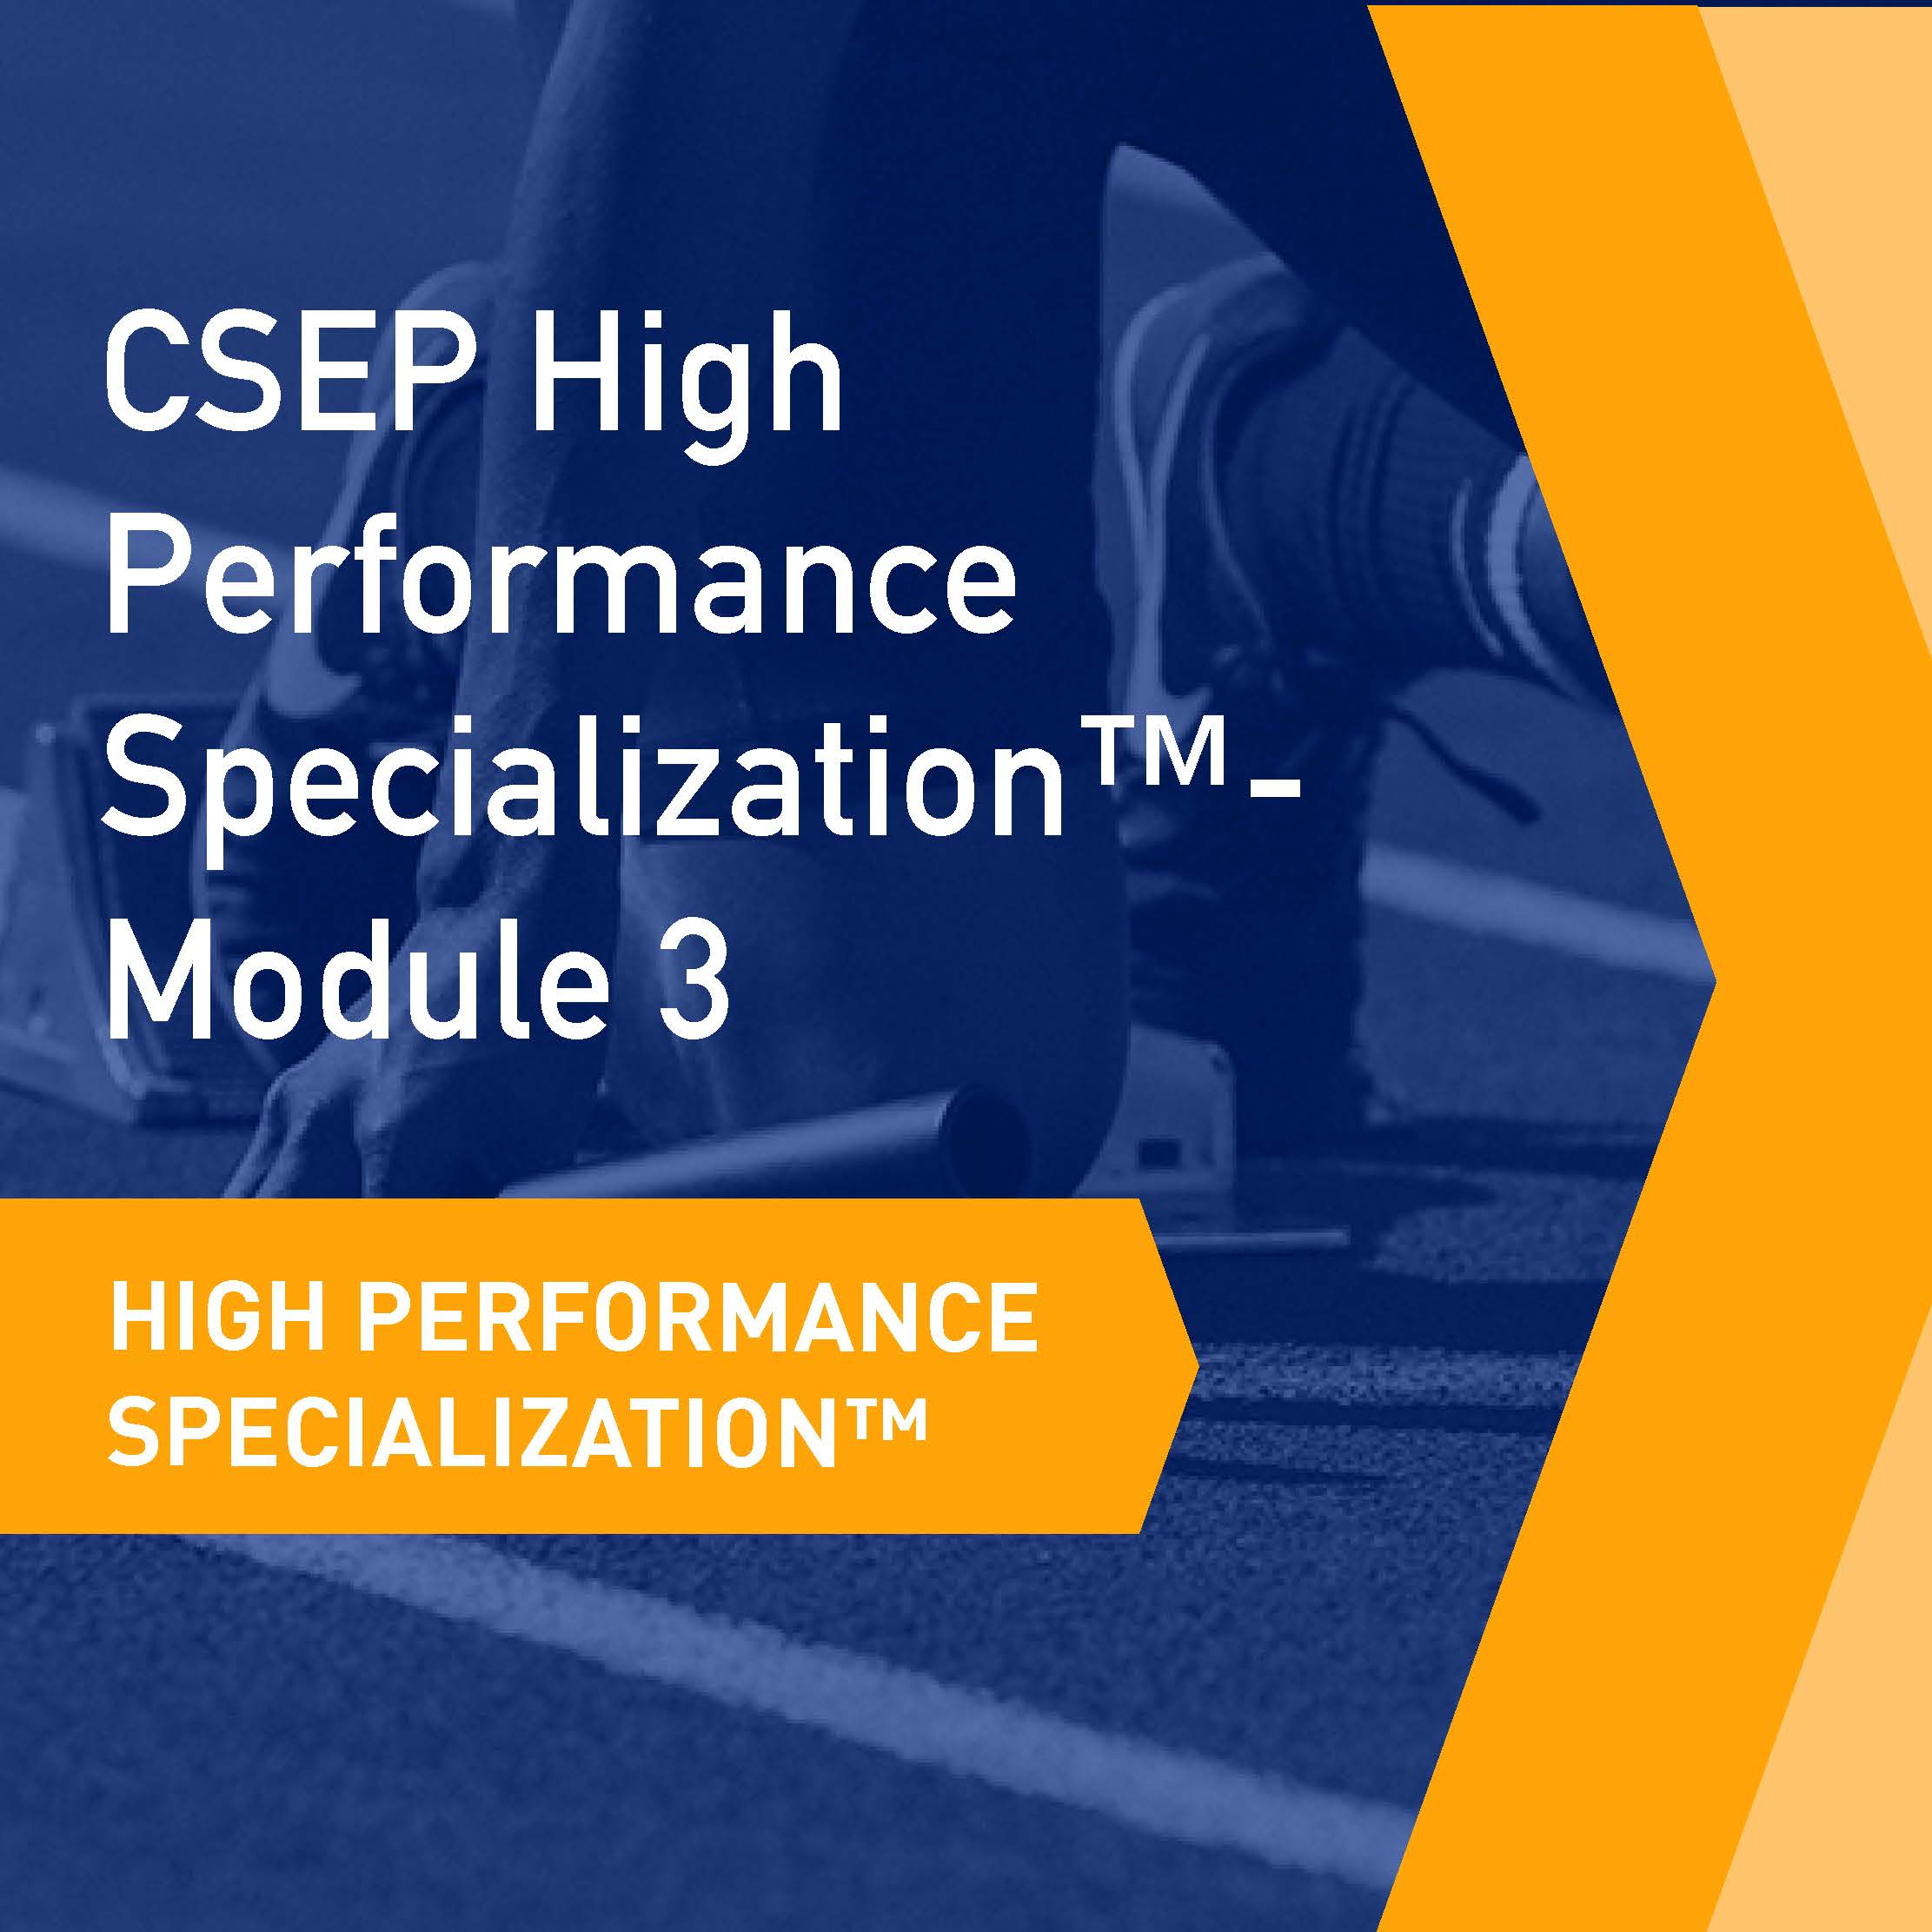 CSEP High Performance Specialization™ - Module 3